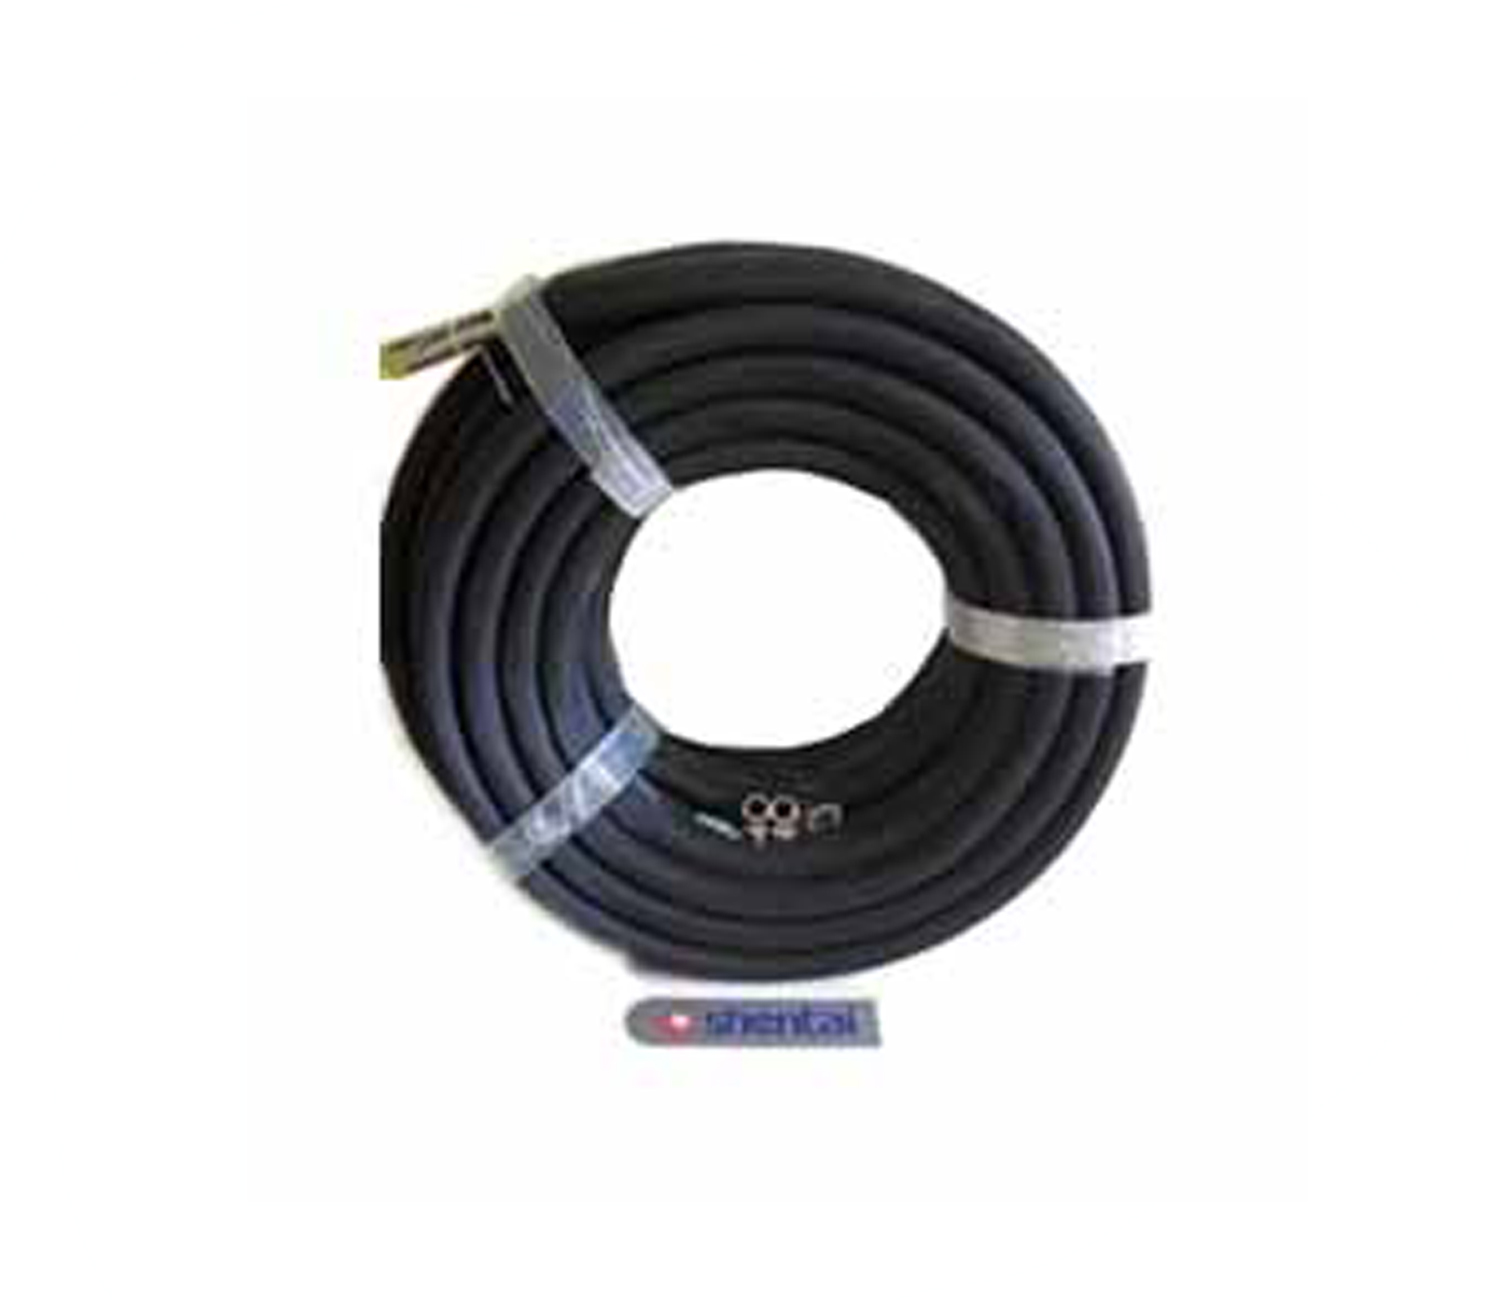 Suntask_25m x DN16_Duo_Flexi_Stainless_Steel_Pipe_Roll.jpg